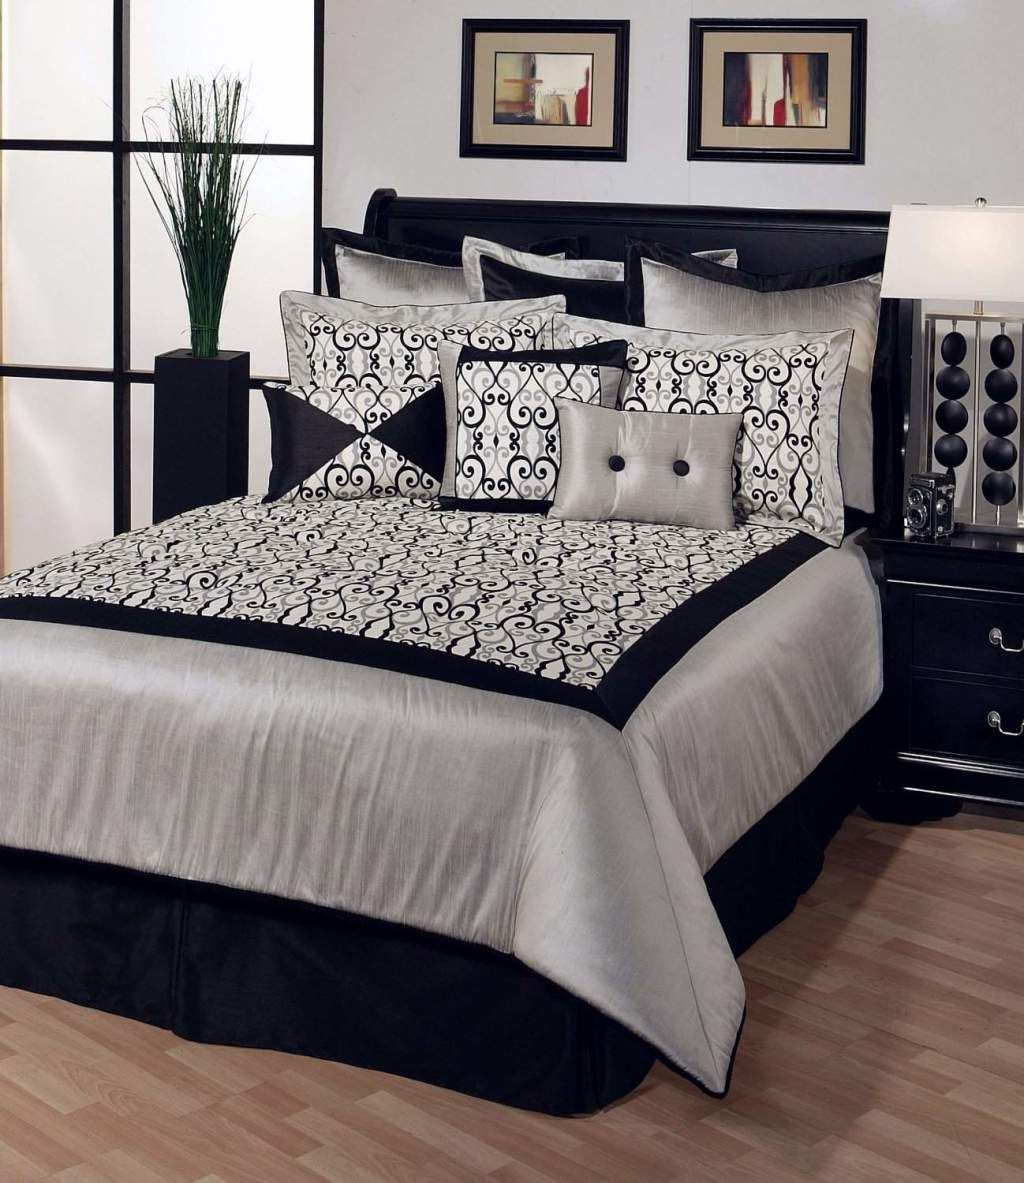 bedroomamazing bedroom awesome black 1000 images about bedroom on pinterest contemporary bedding grey curtains bedroom and black white bedroom awesome